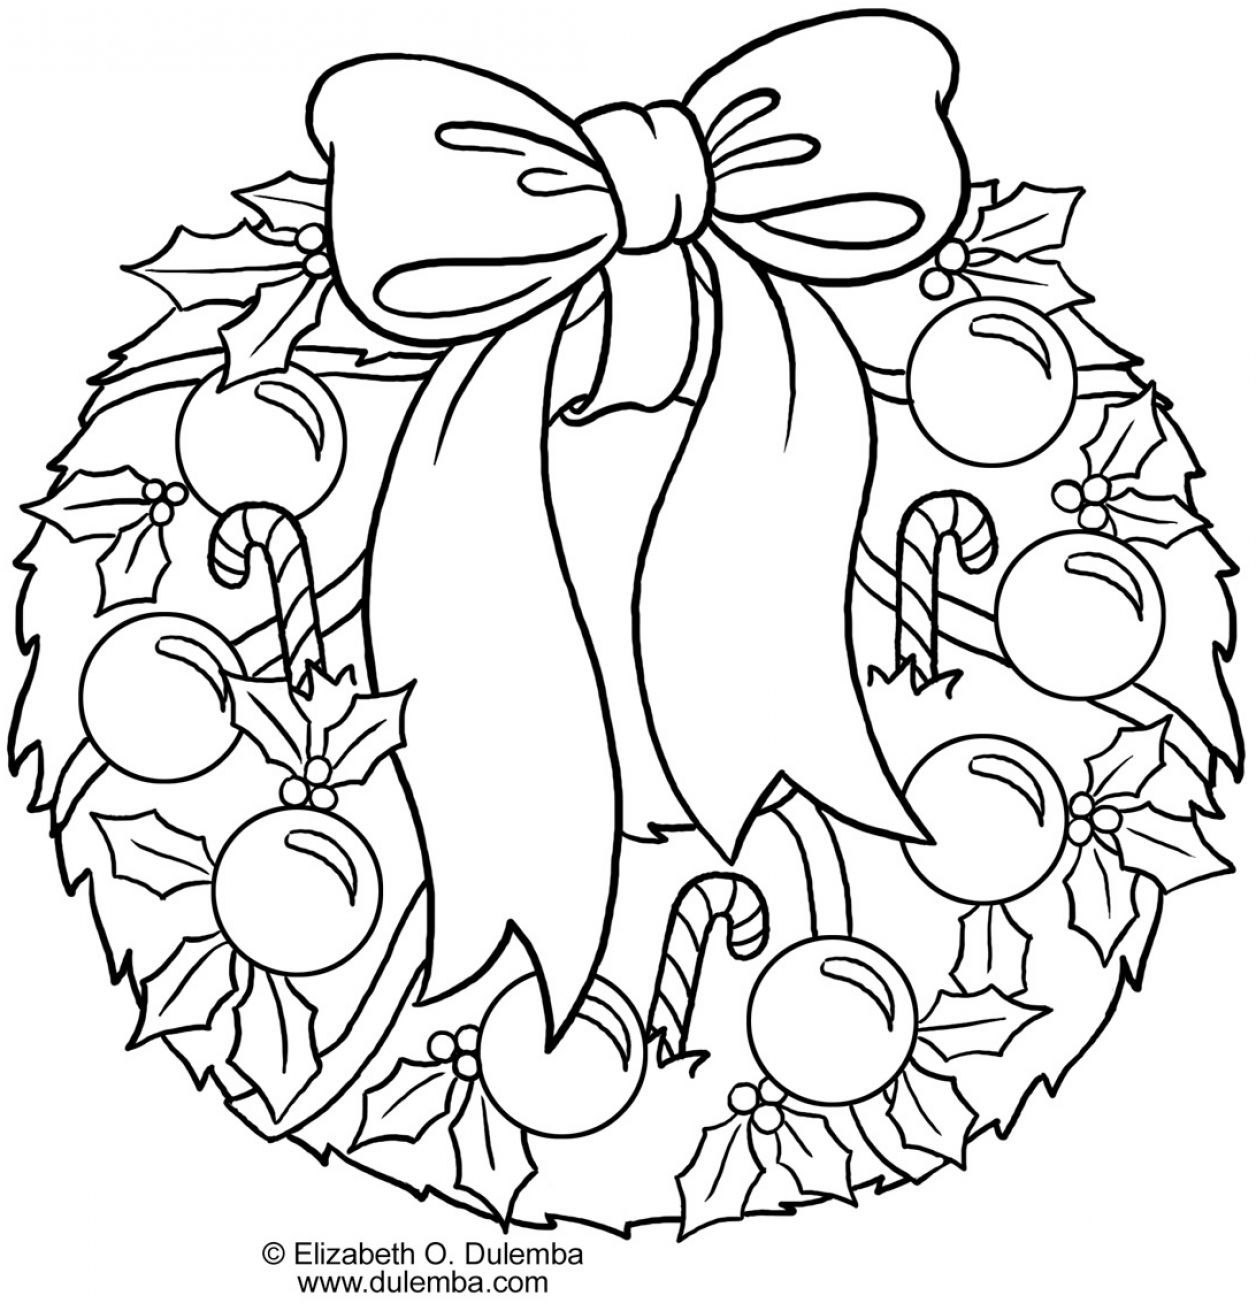 This is an image of Effortless Christmas Coloring Sheets Printable